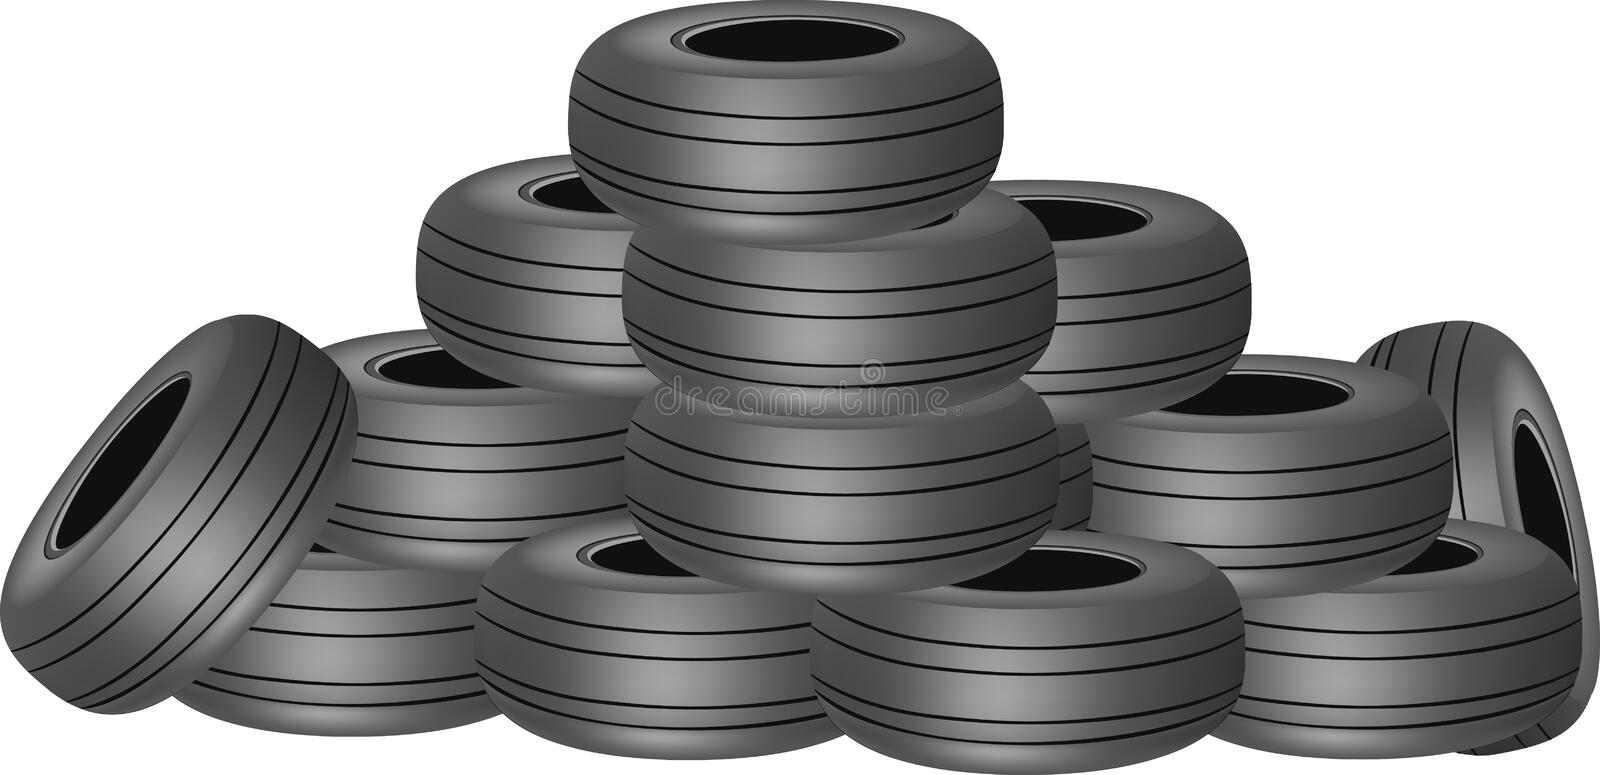 Worn tires in a heap. Pile of tires truck tires used or new vector illustration